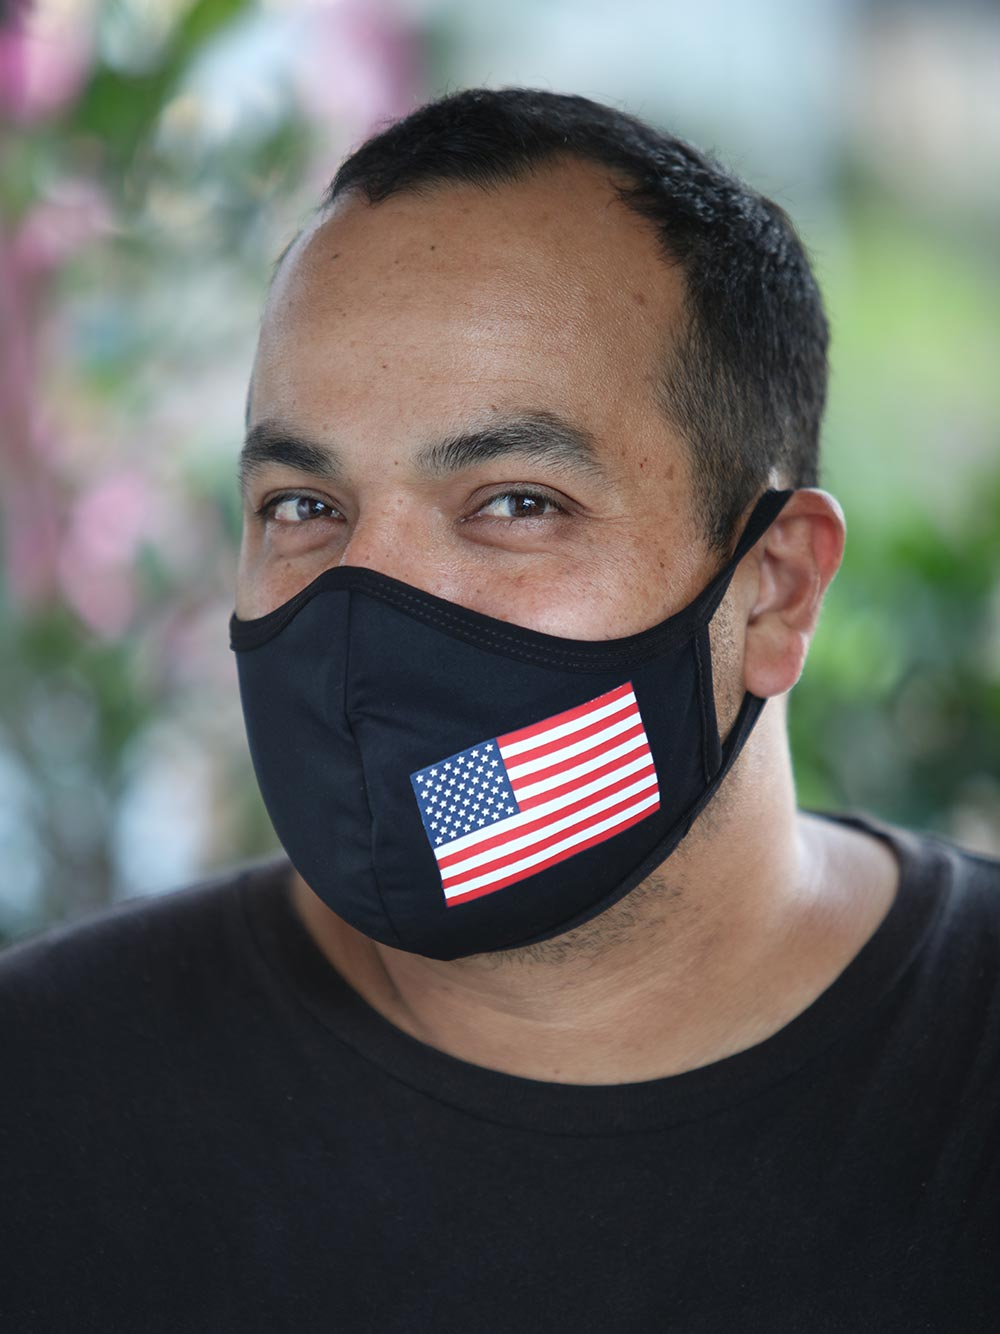 Mens Black American Flag Face Mask